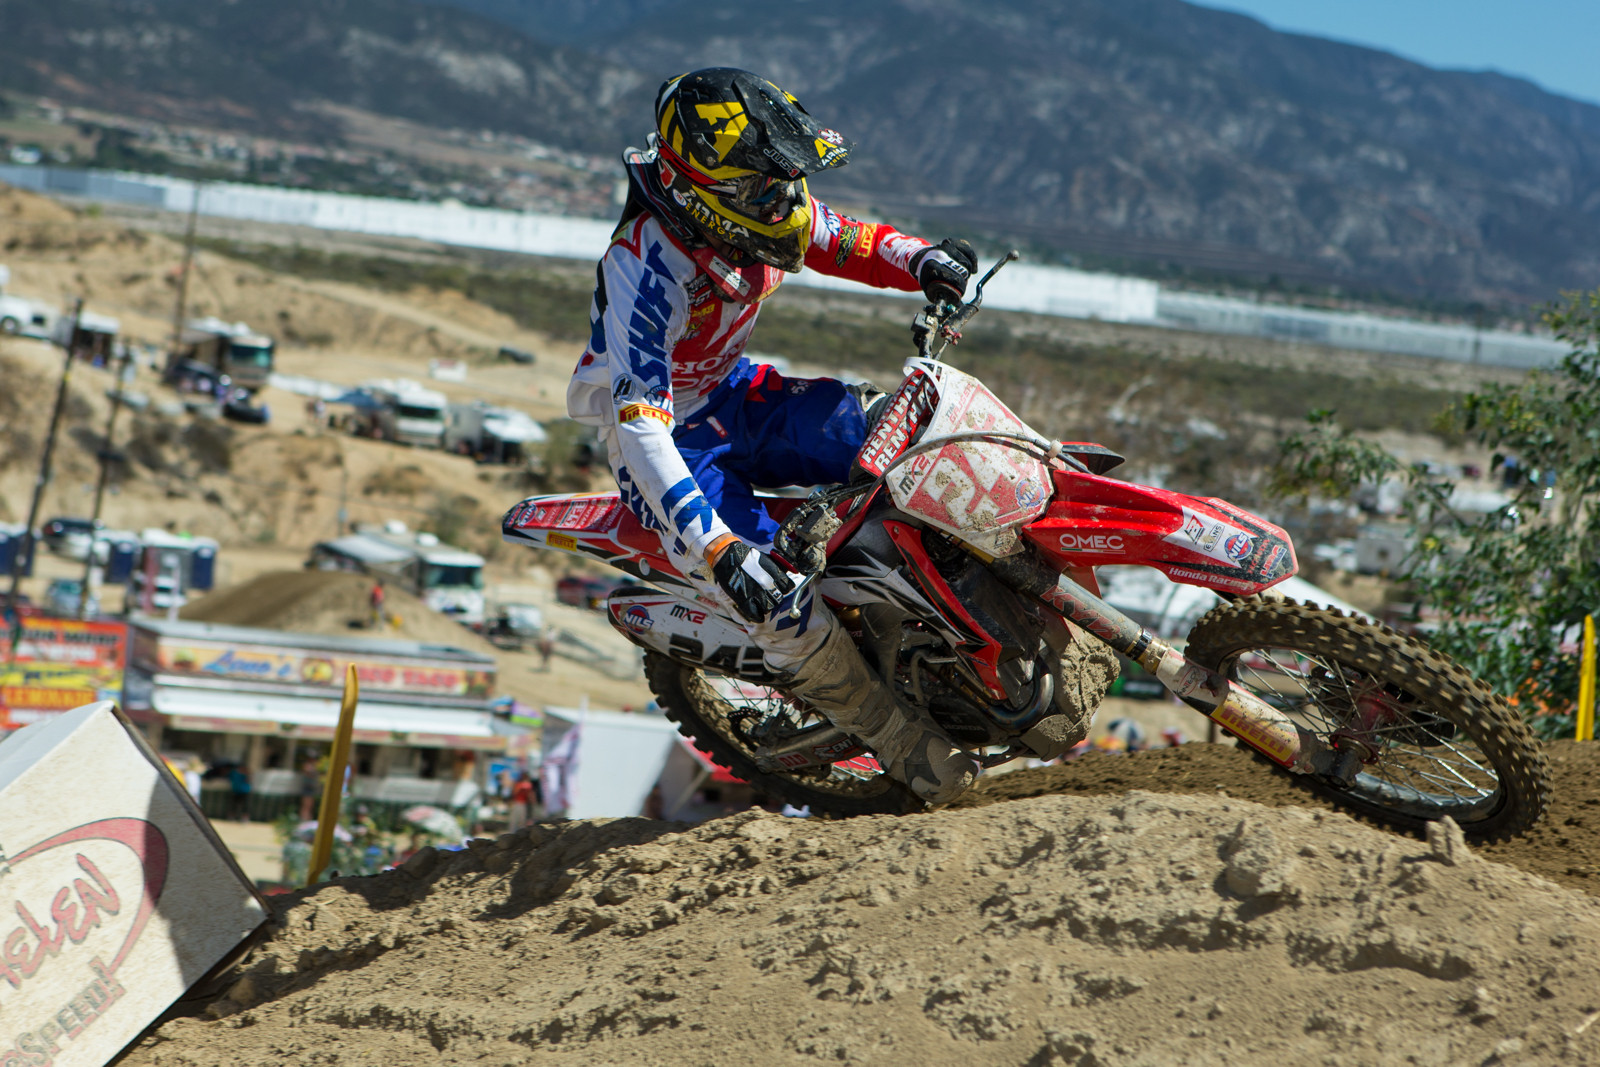 Tim Gajser - Photo Blast: MXGP of the USA - Motocross Pictures - Vital MX